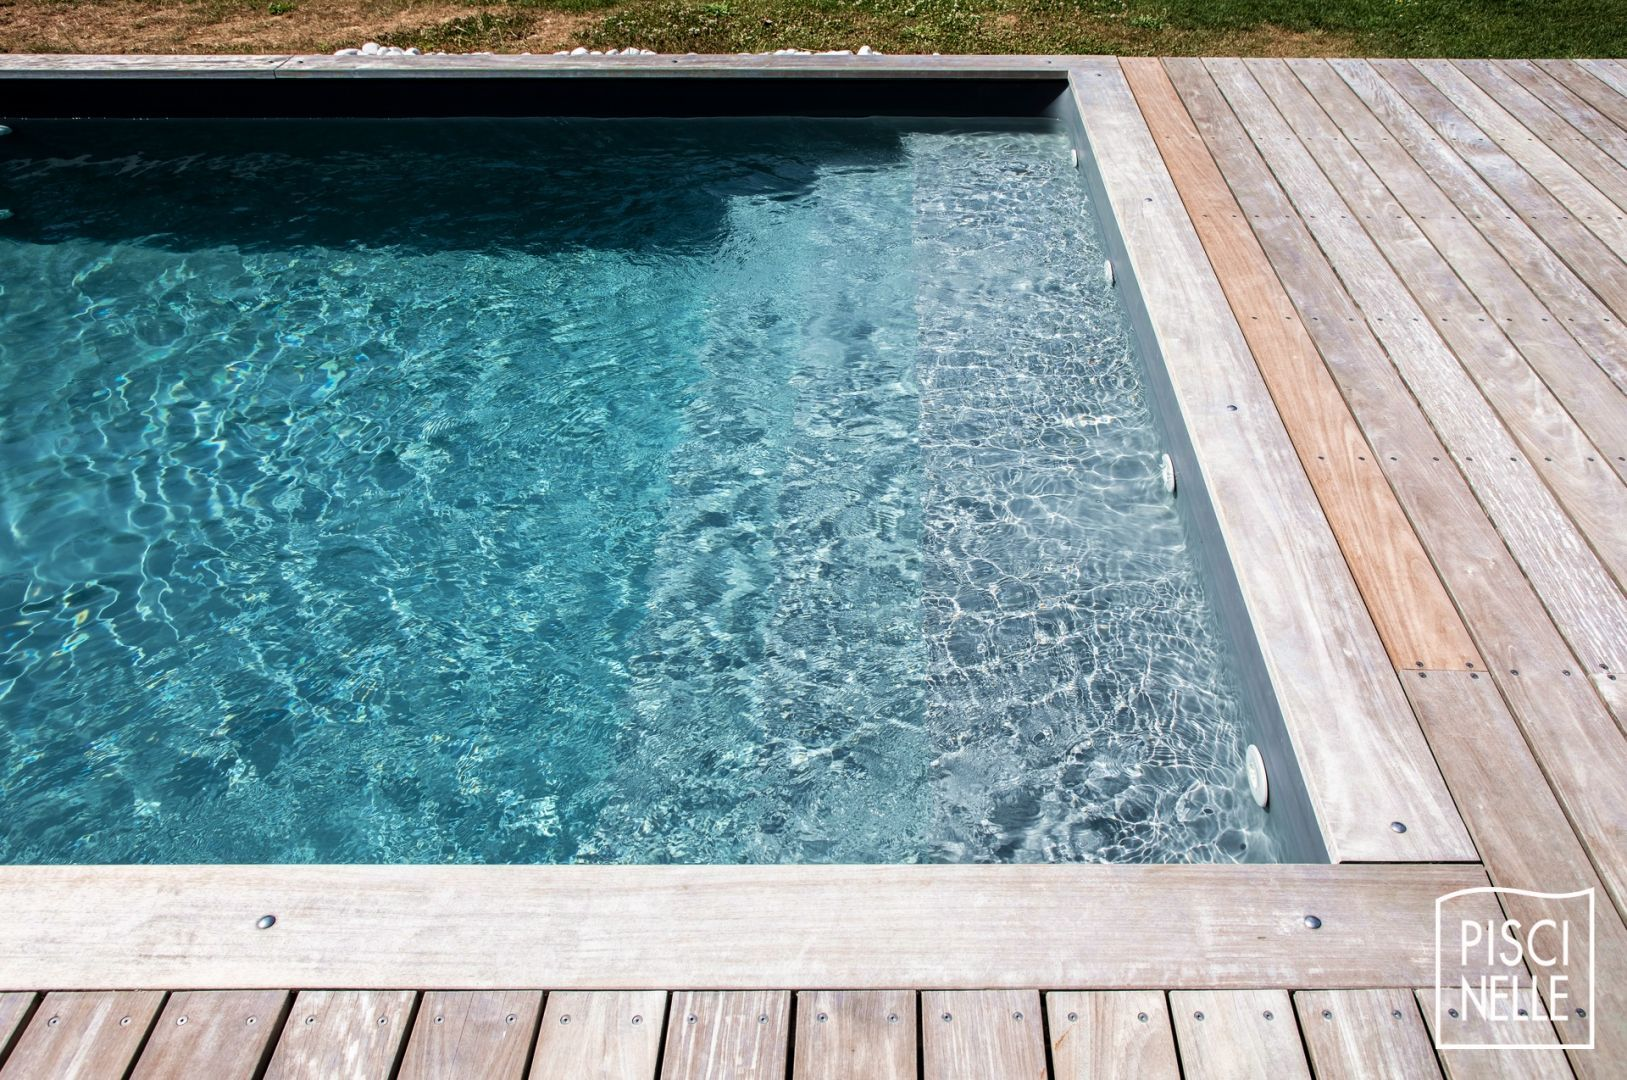 Pool Trends Knife Edge Pools For A Slightly More Upscale Design